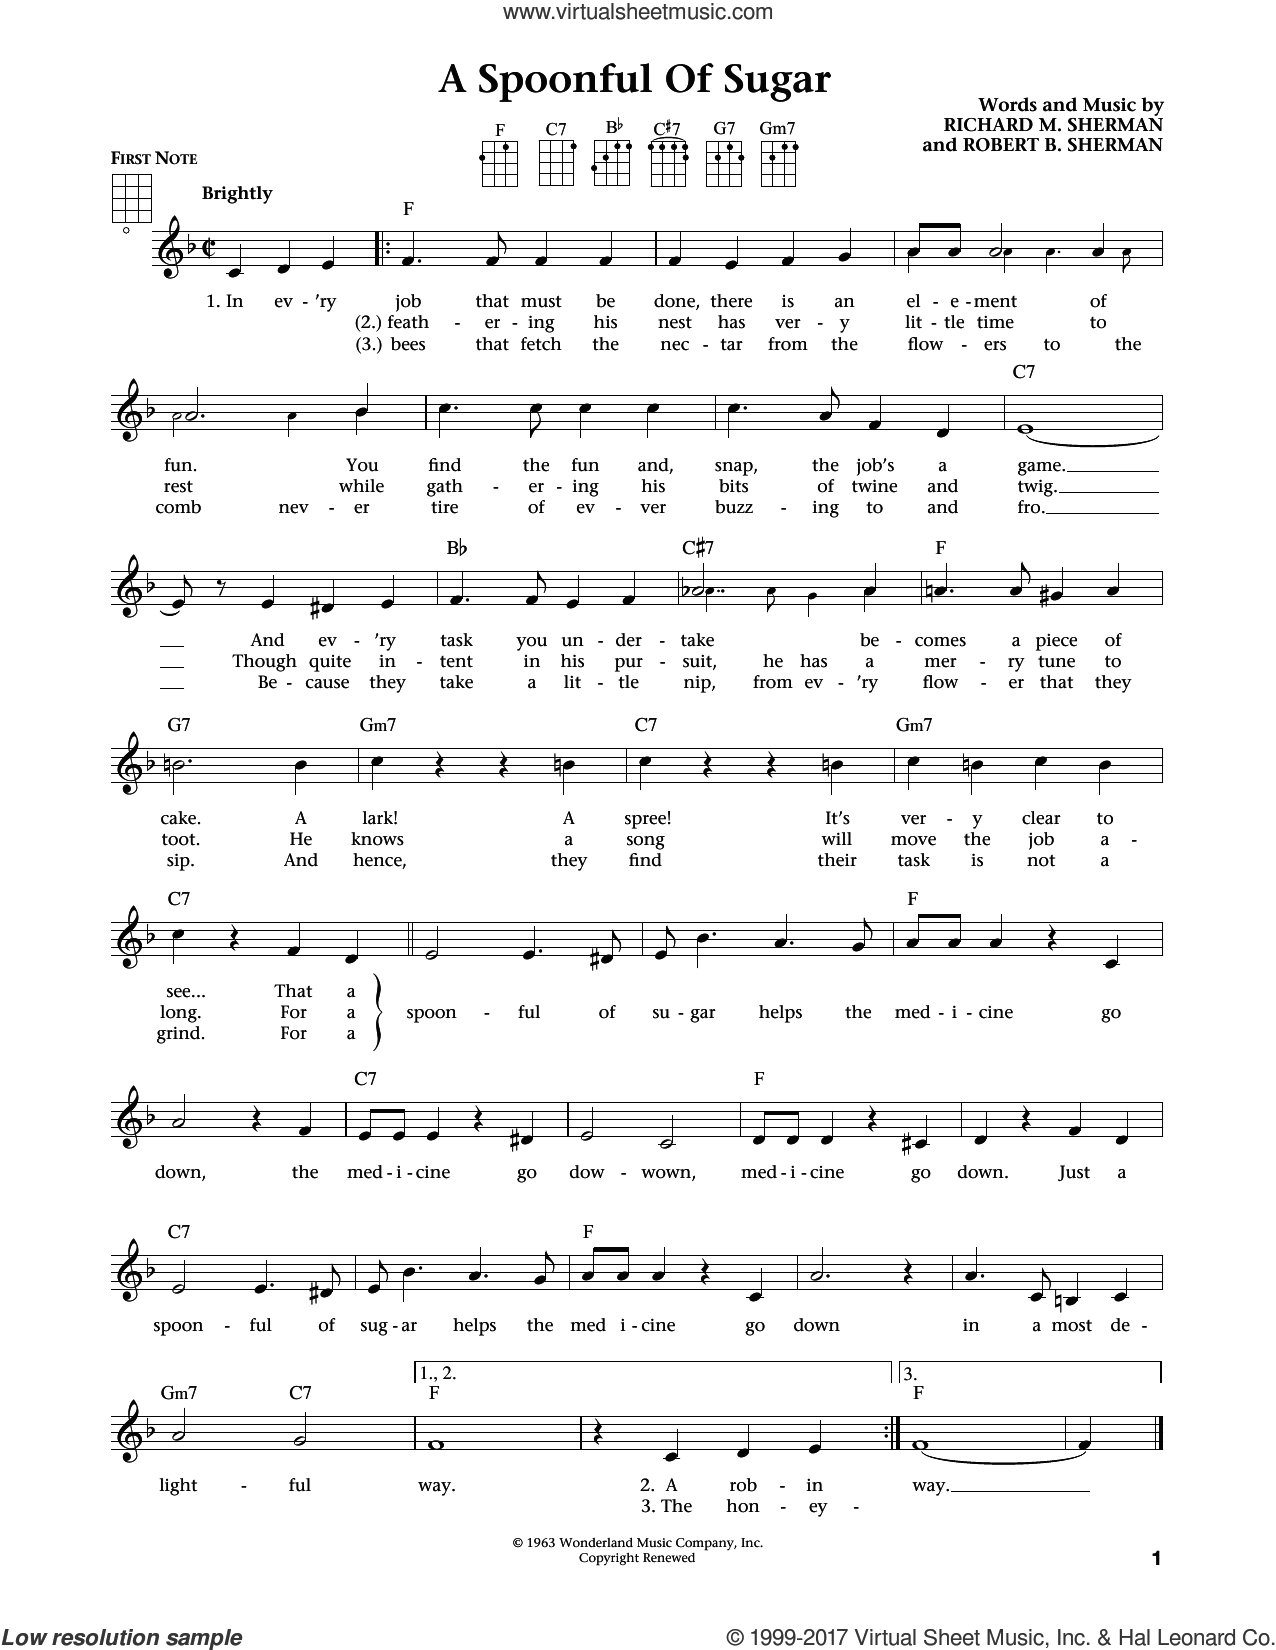 A Spoonful Of Sugar sheet music for ukulele by Richard M. Sherman, Jim Beloff, Liz Beloff and Robert B. Sherman, intermediate skill level